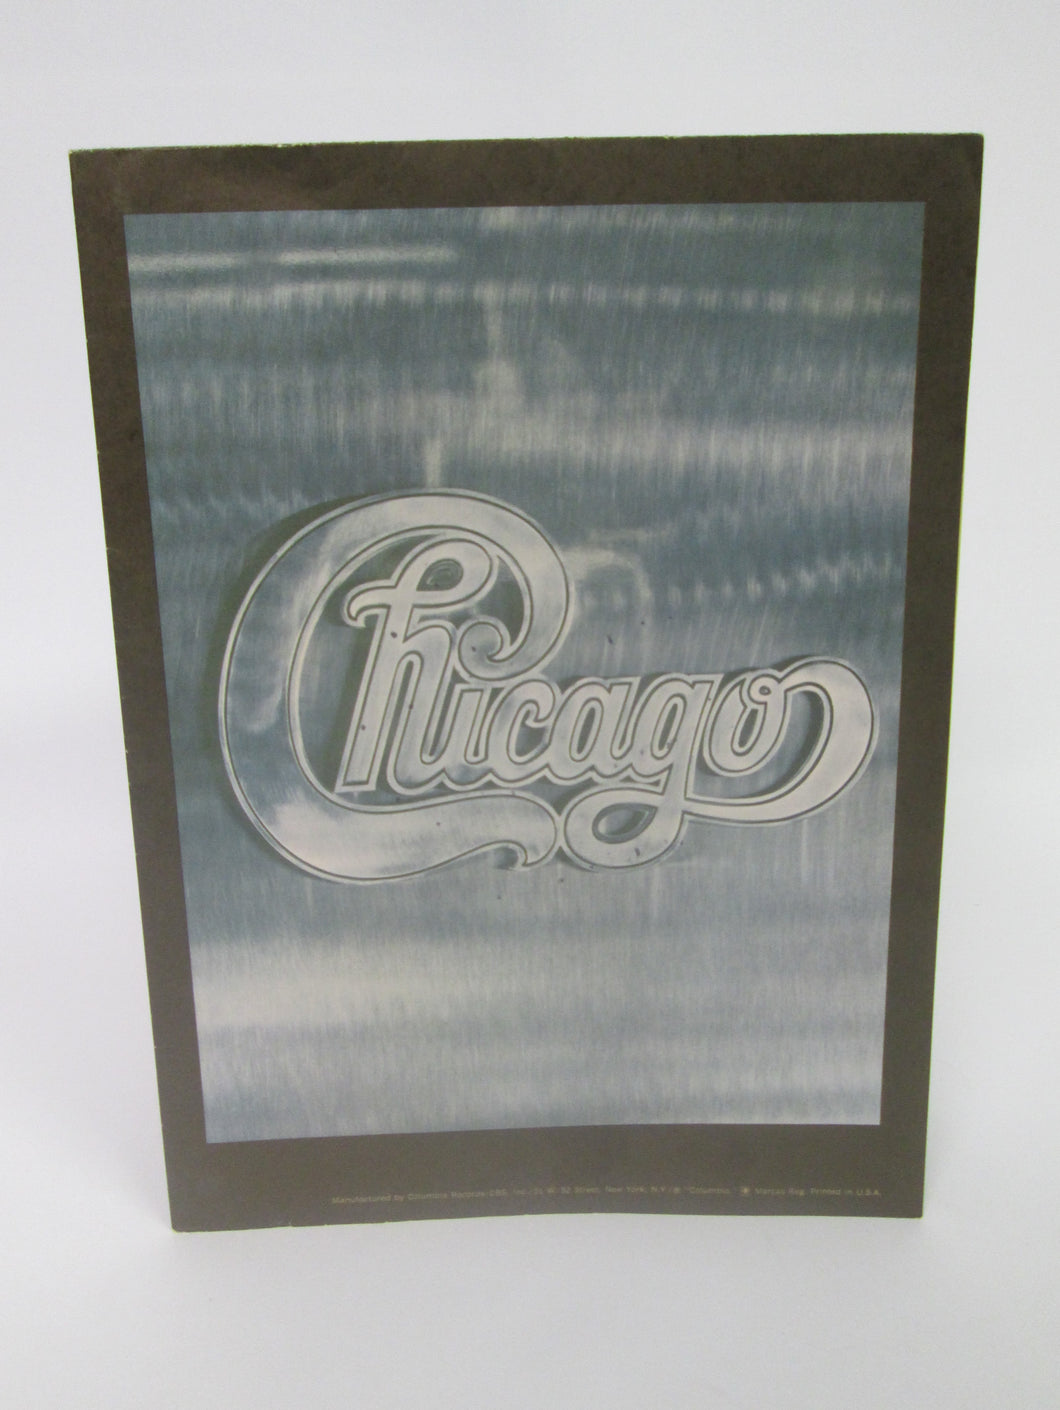 Chicago Music Group Poster from one of their albums